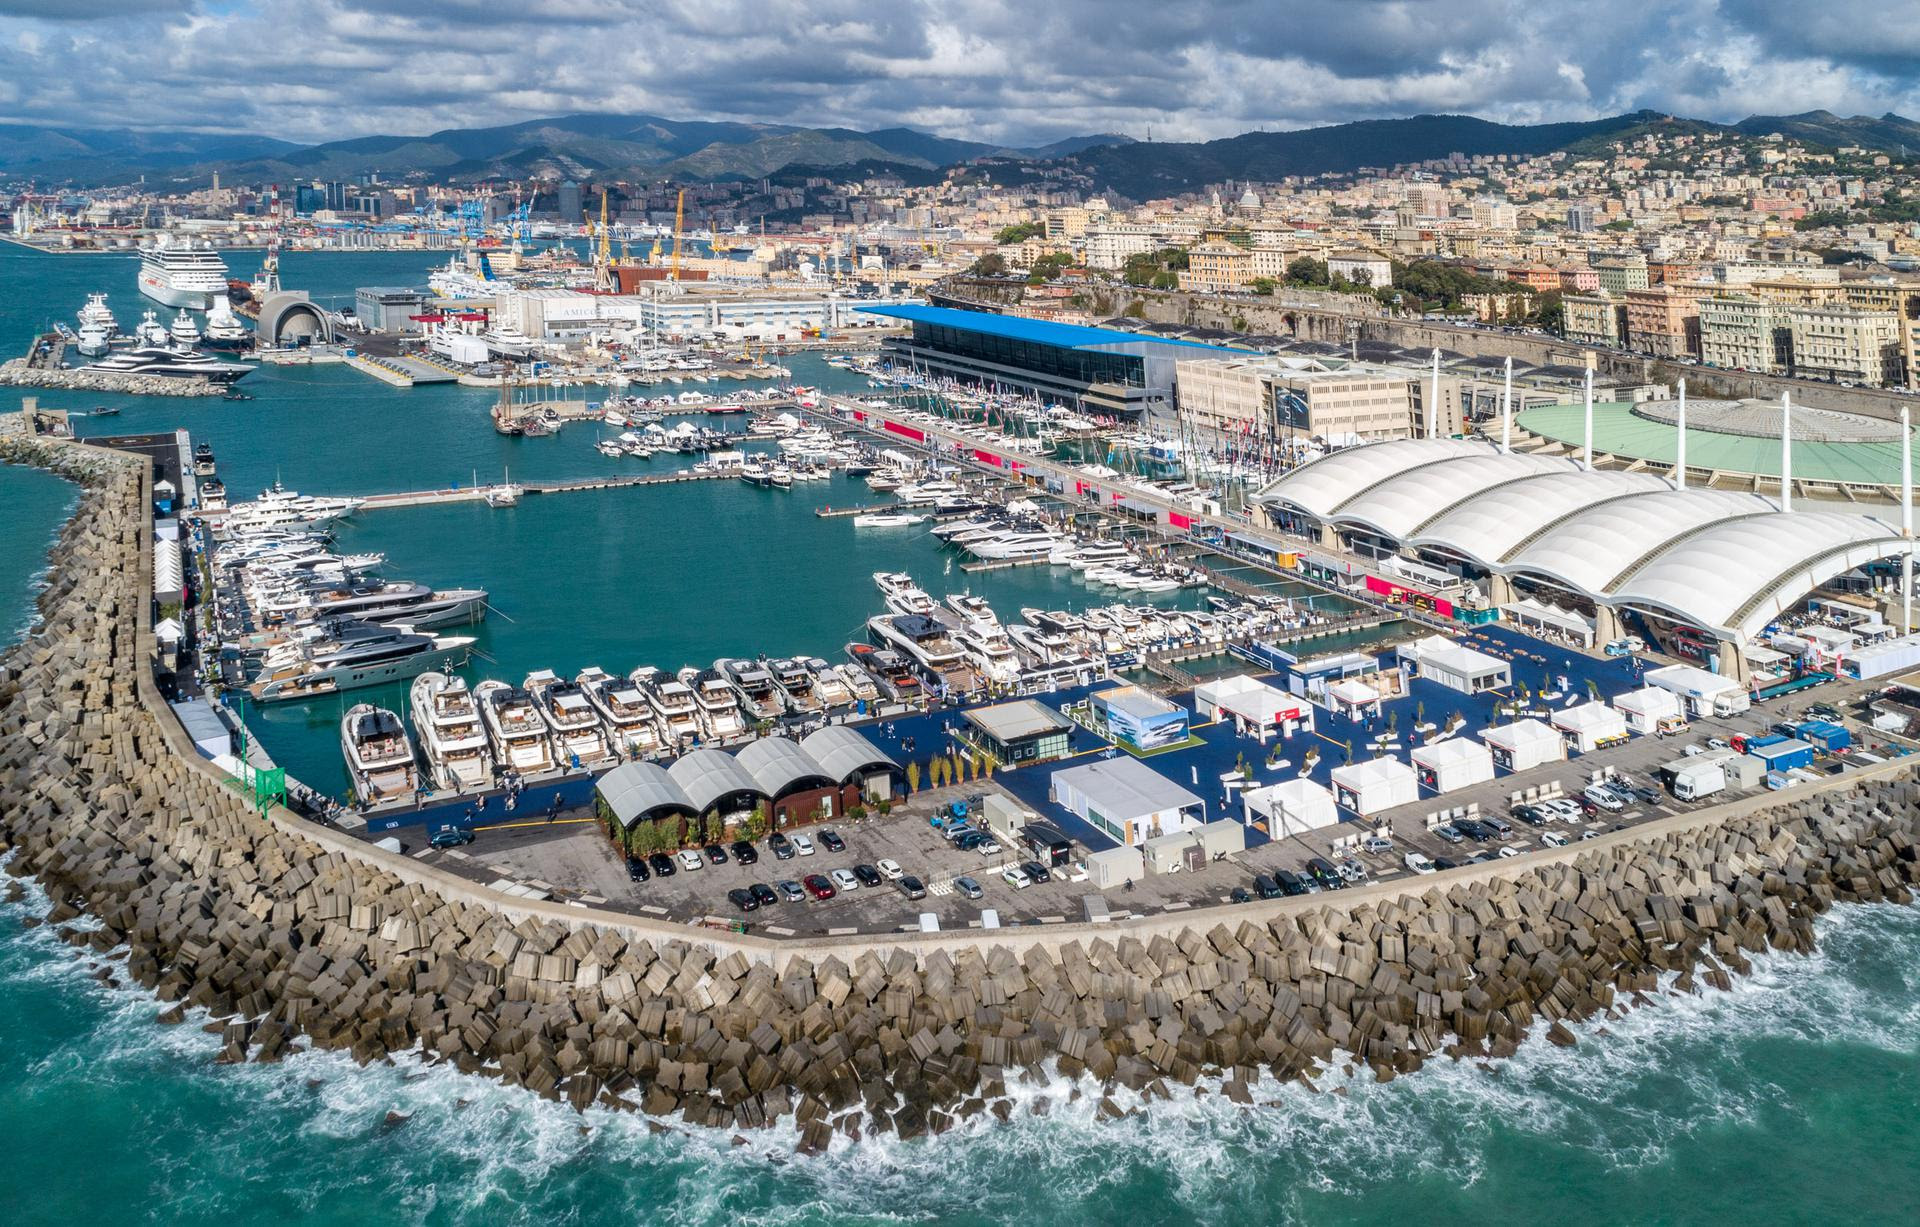 Aerial of the Genoa Boat Show 2021